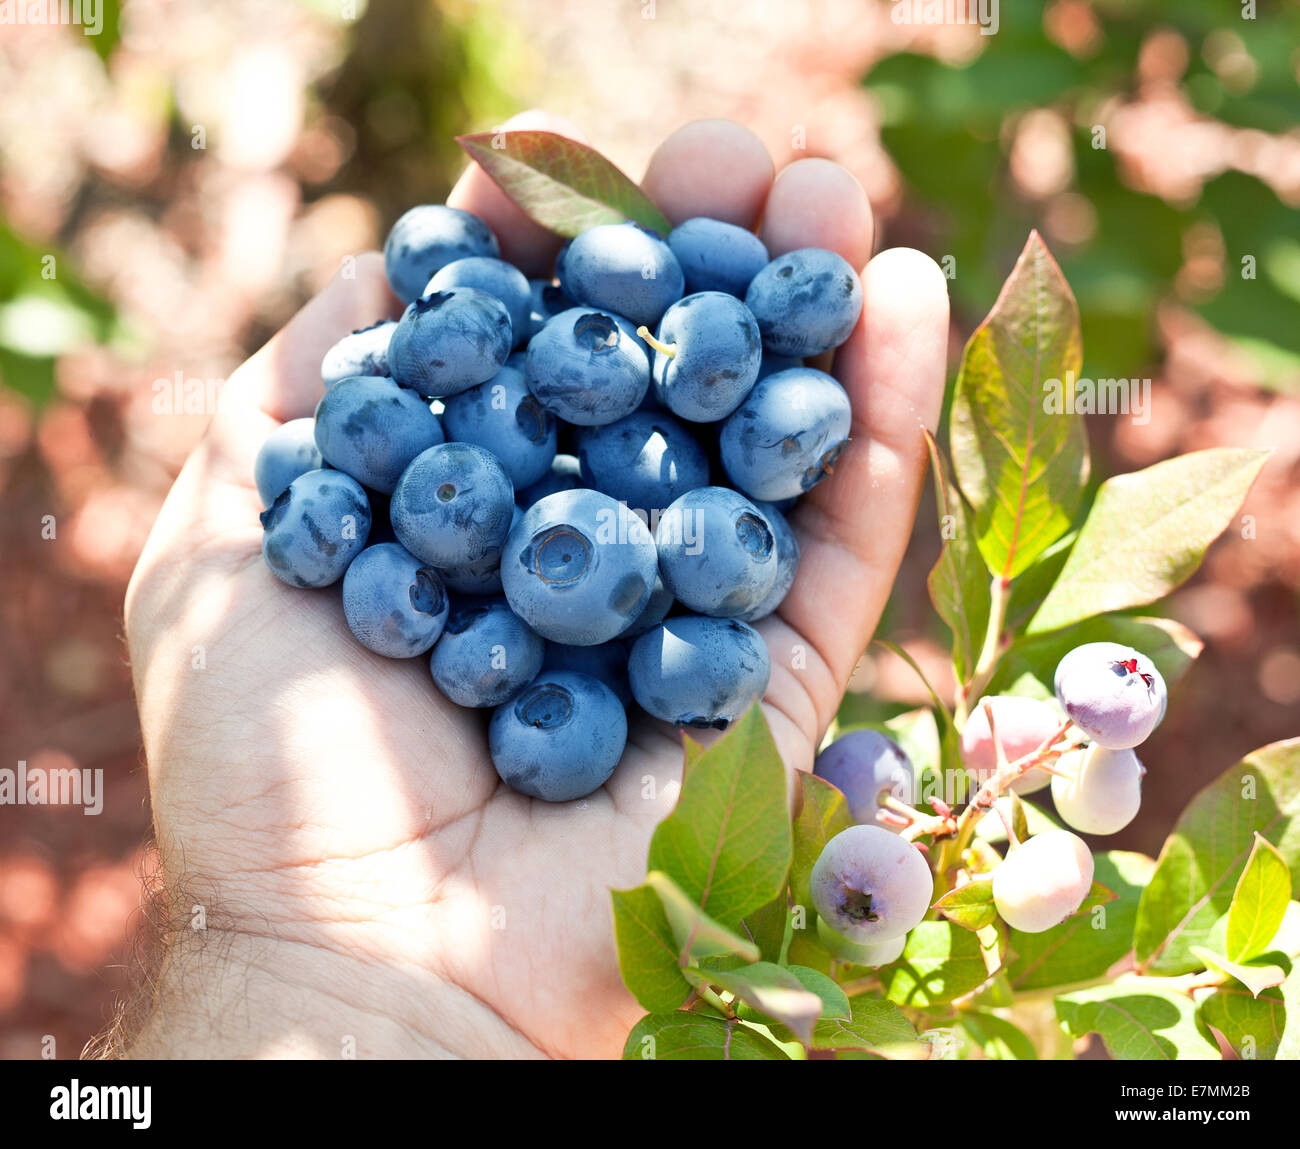 Blueberries in the man's hands. Green shrubs on the background. - Stock Image